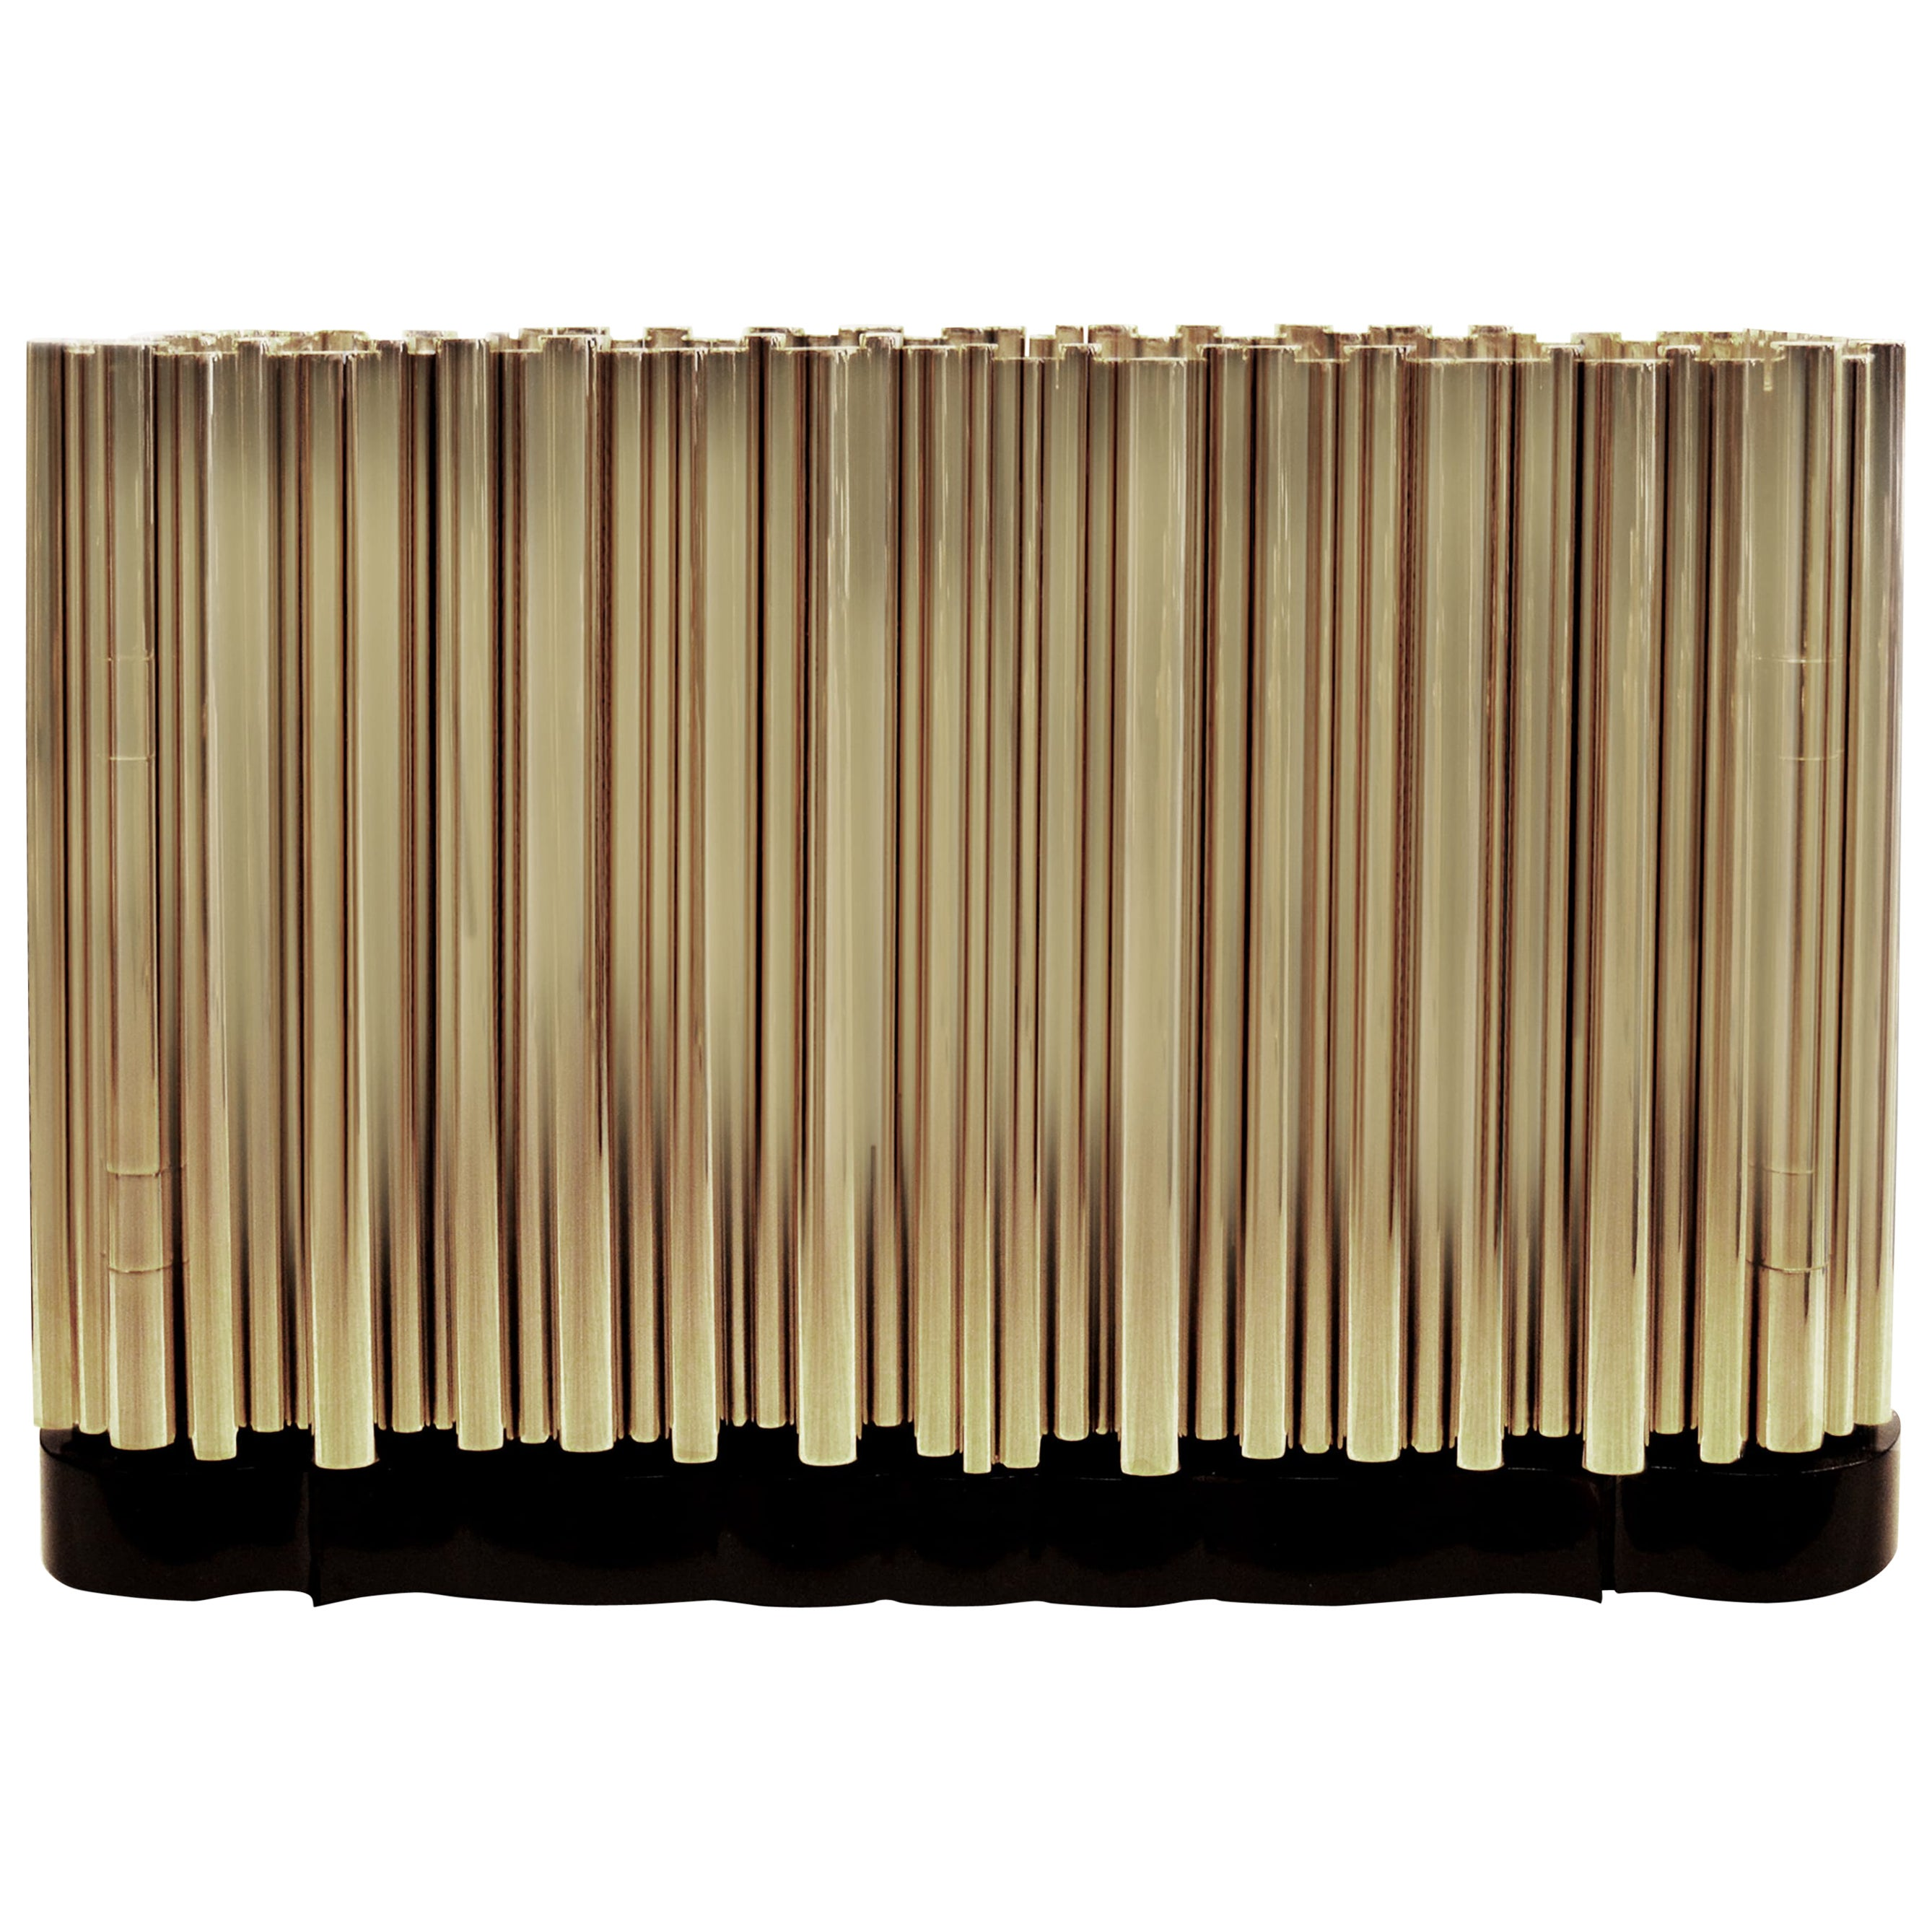 Symphony Nightstand in Rosewood Veneer and Gold Plated Brass